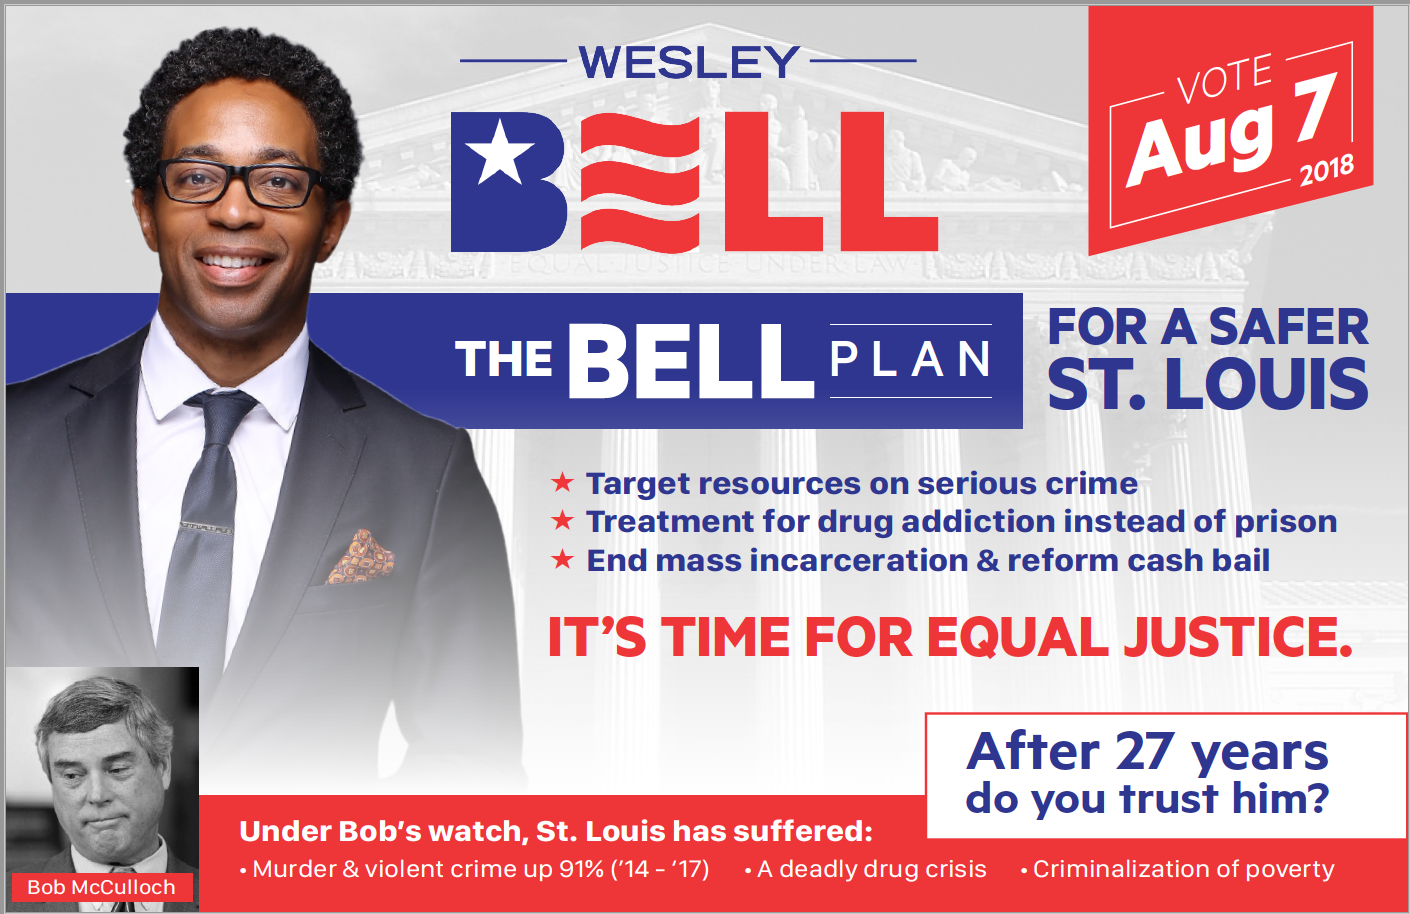 The historic election of Wesley Bell, movement-building, and